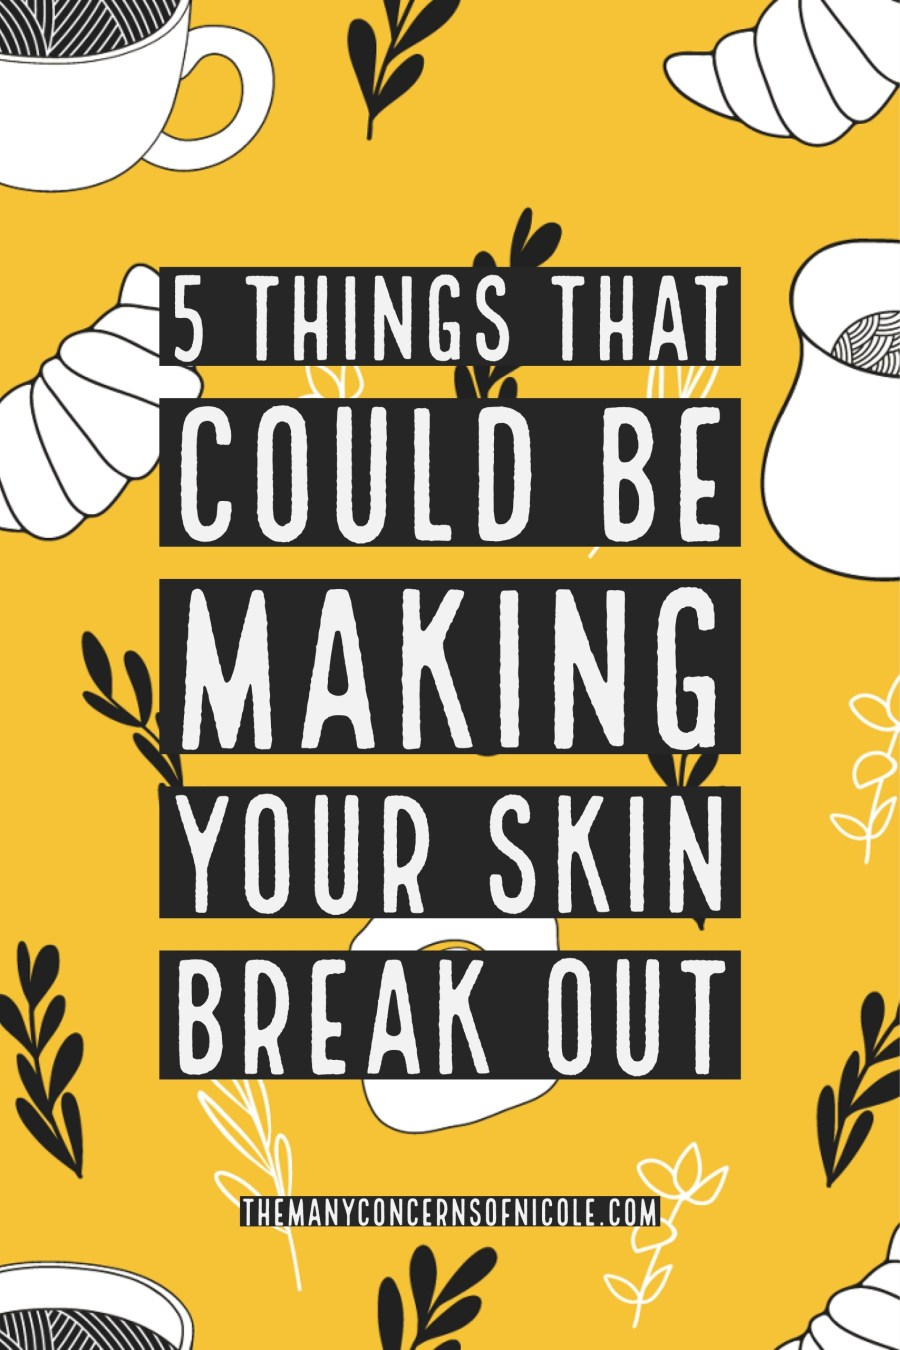 Making Your Skin Break Out